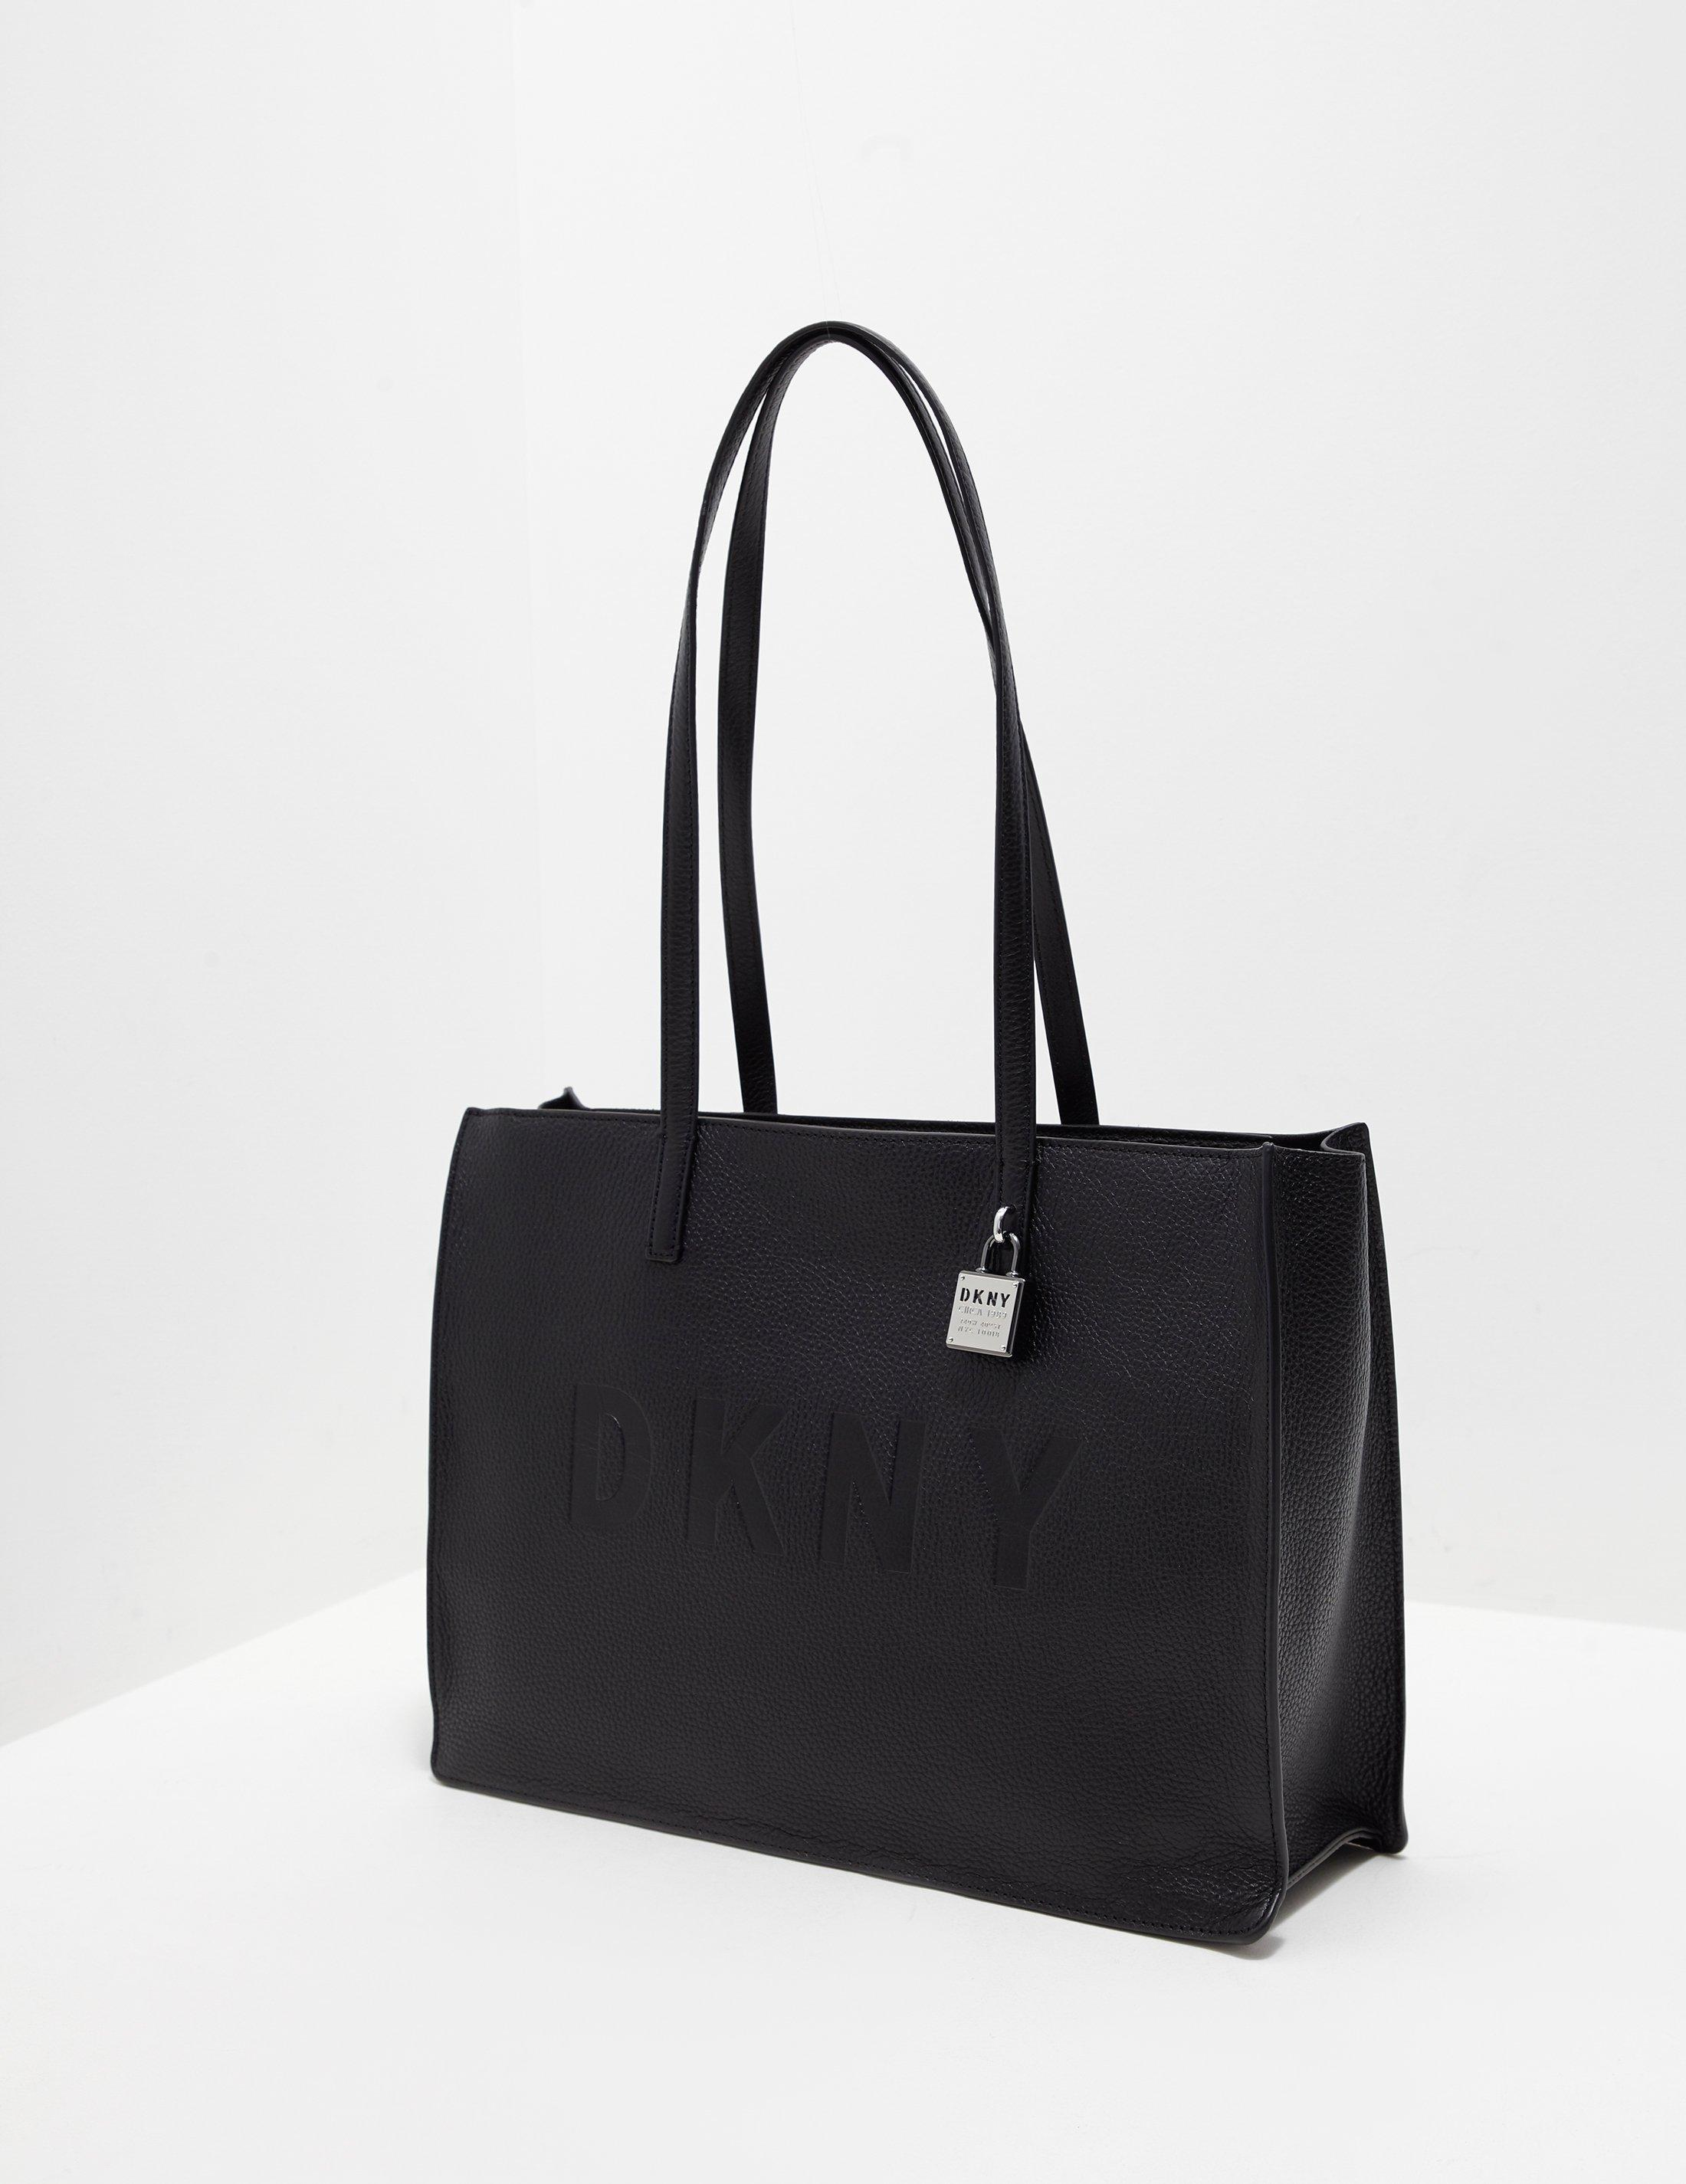 55d7f79e1571 DKNY Commuter Tote Bag Black in Black - Save 16% - Lyst